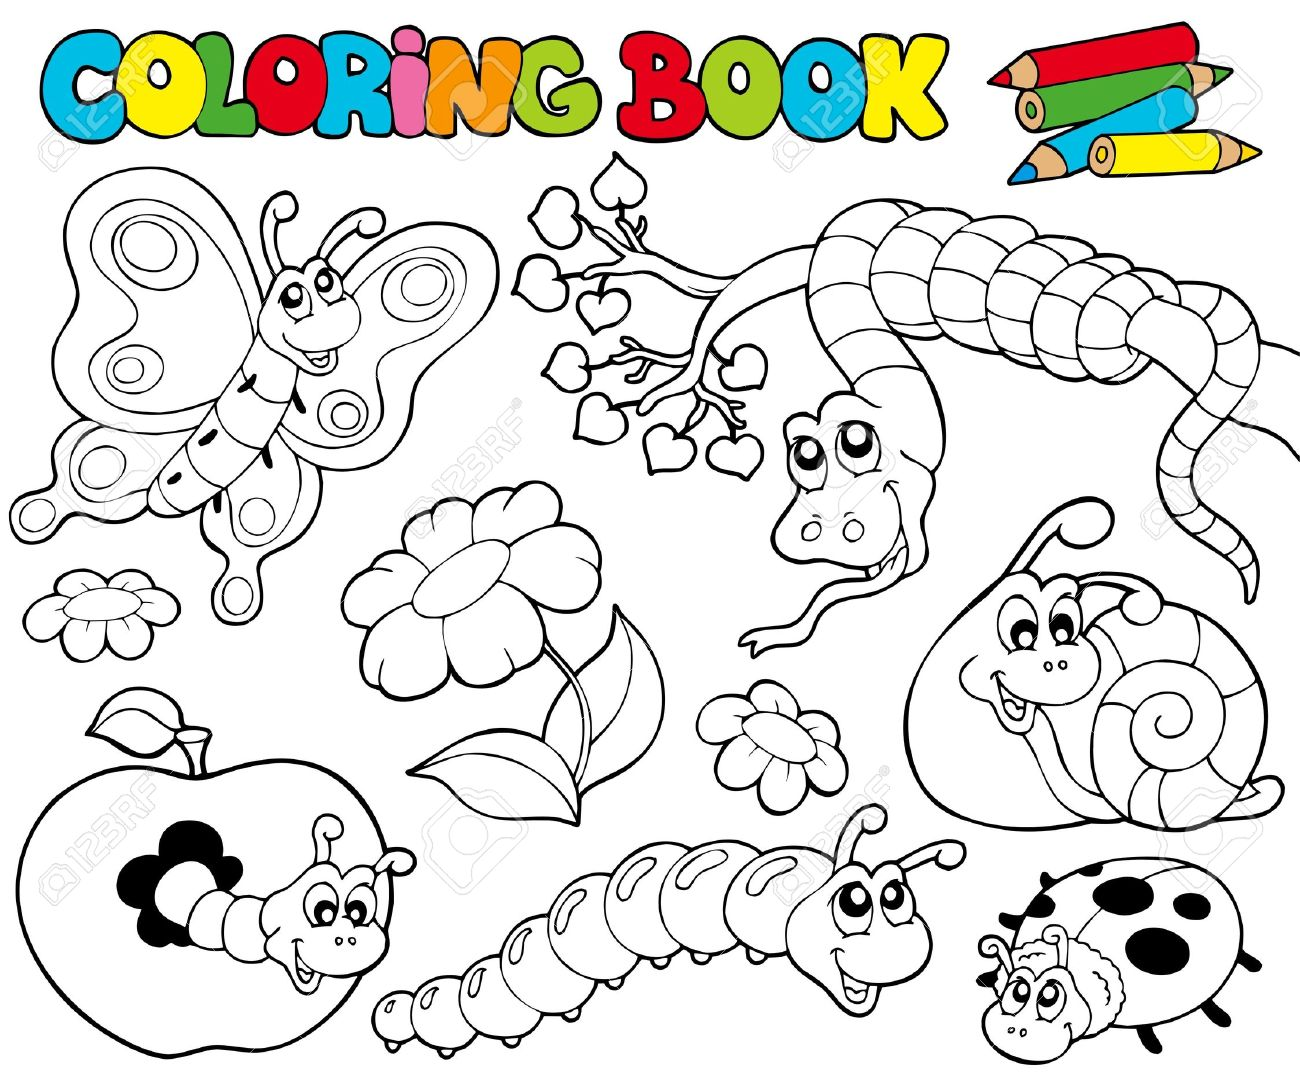 Coloring Book With Small Animals Illustration Royalty Free